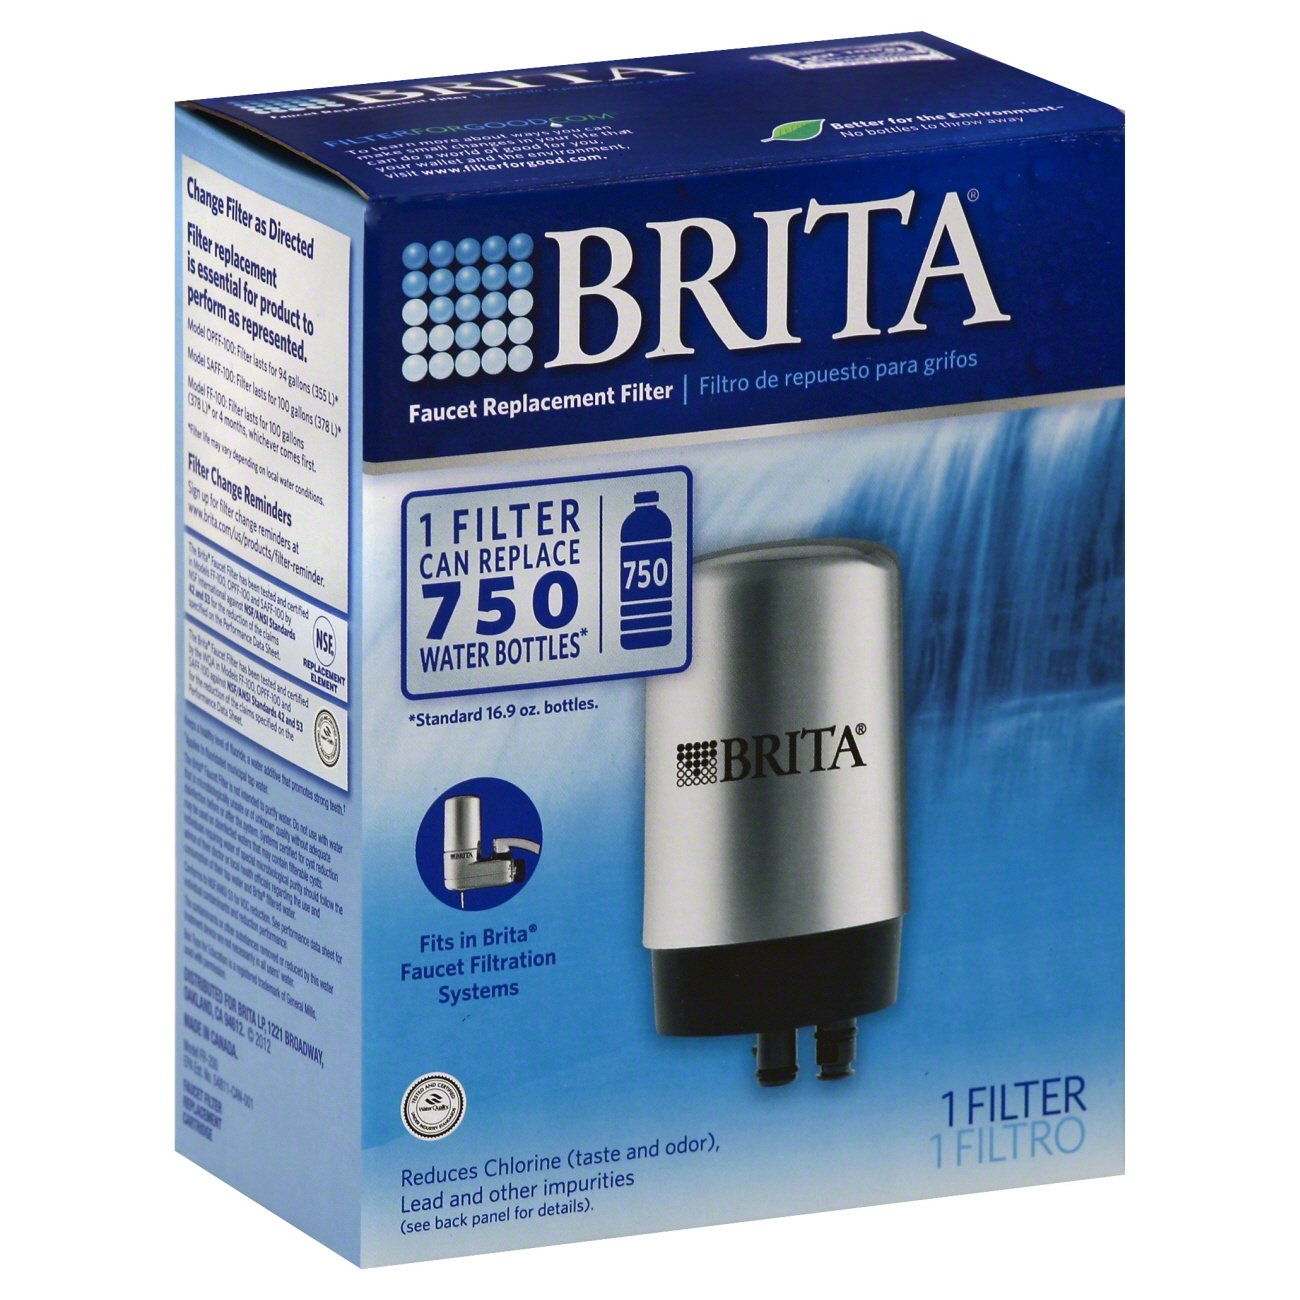 Brita Faucet Replacement Filter - Shop Water Filters at HEB